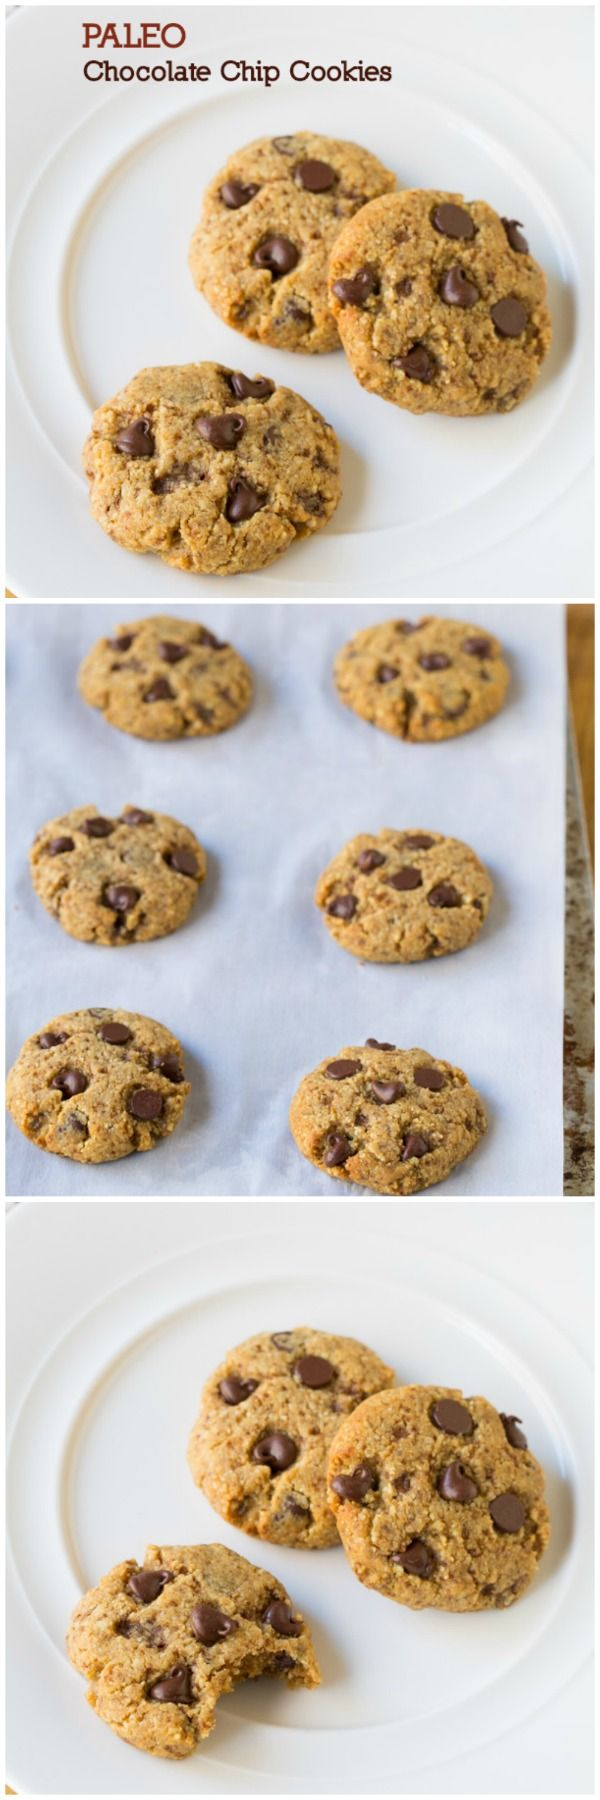 Easy and DIVINE Paleo Chocolate Chip Cookies. Now you can stay on your diet and still have your favorite cookie, guilt-free! Paleo Chocolate Chip Cookies